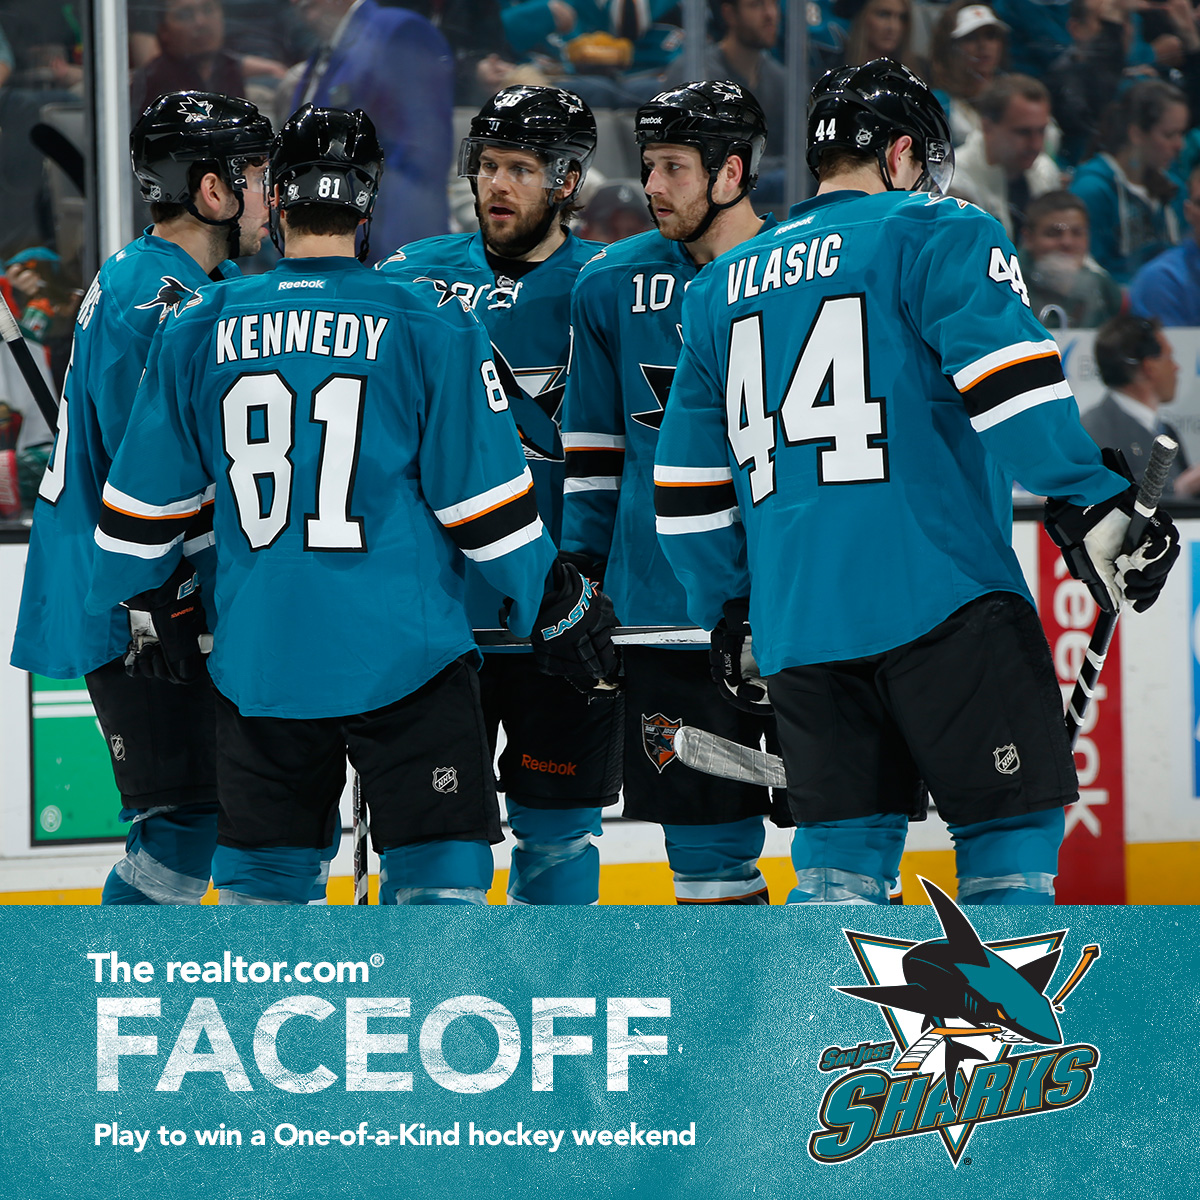 Enter the realtor.com Faceoff, Win a Trip to San Jose to Watch the Sharks!